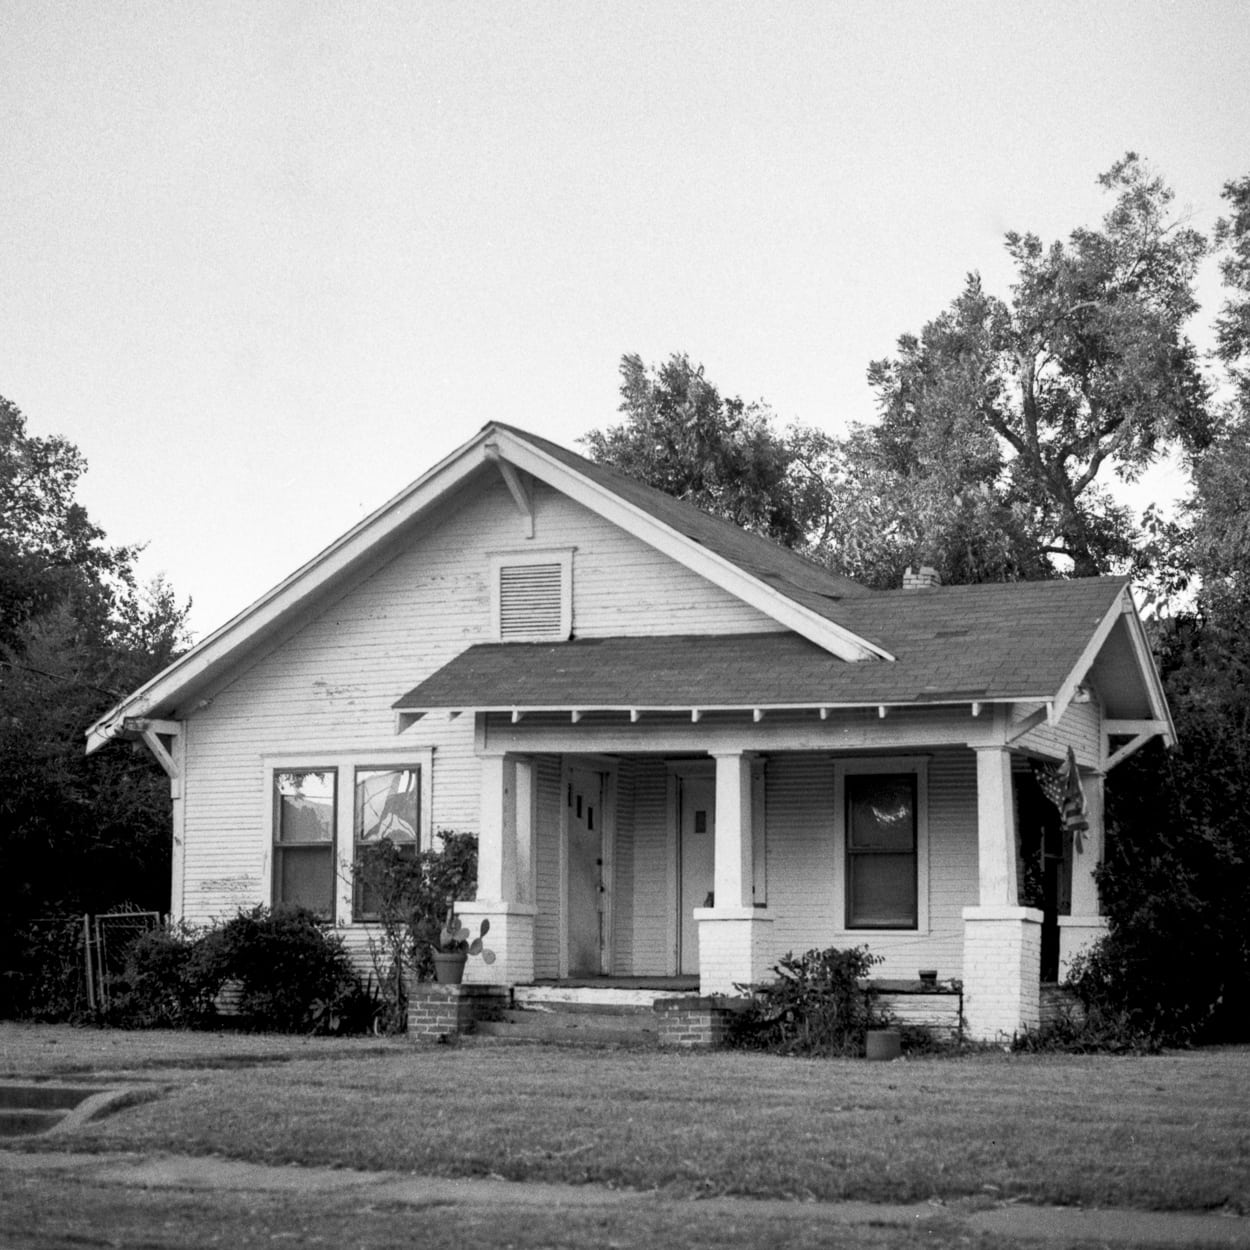 An old house in Old East Dallas neighborhood